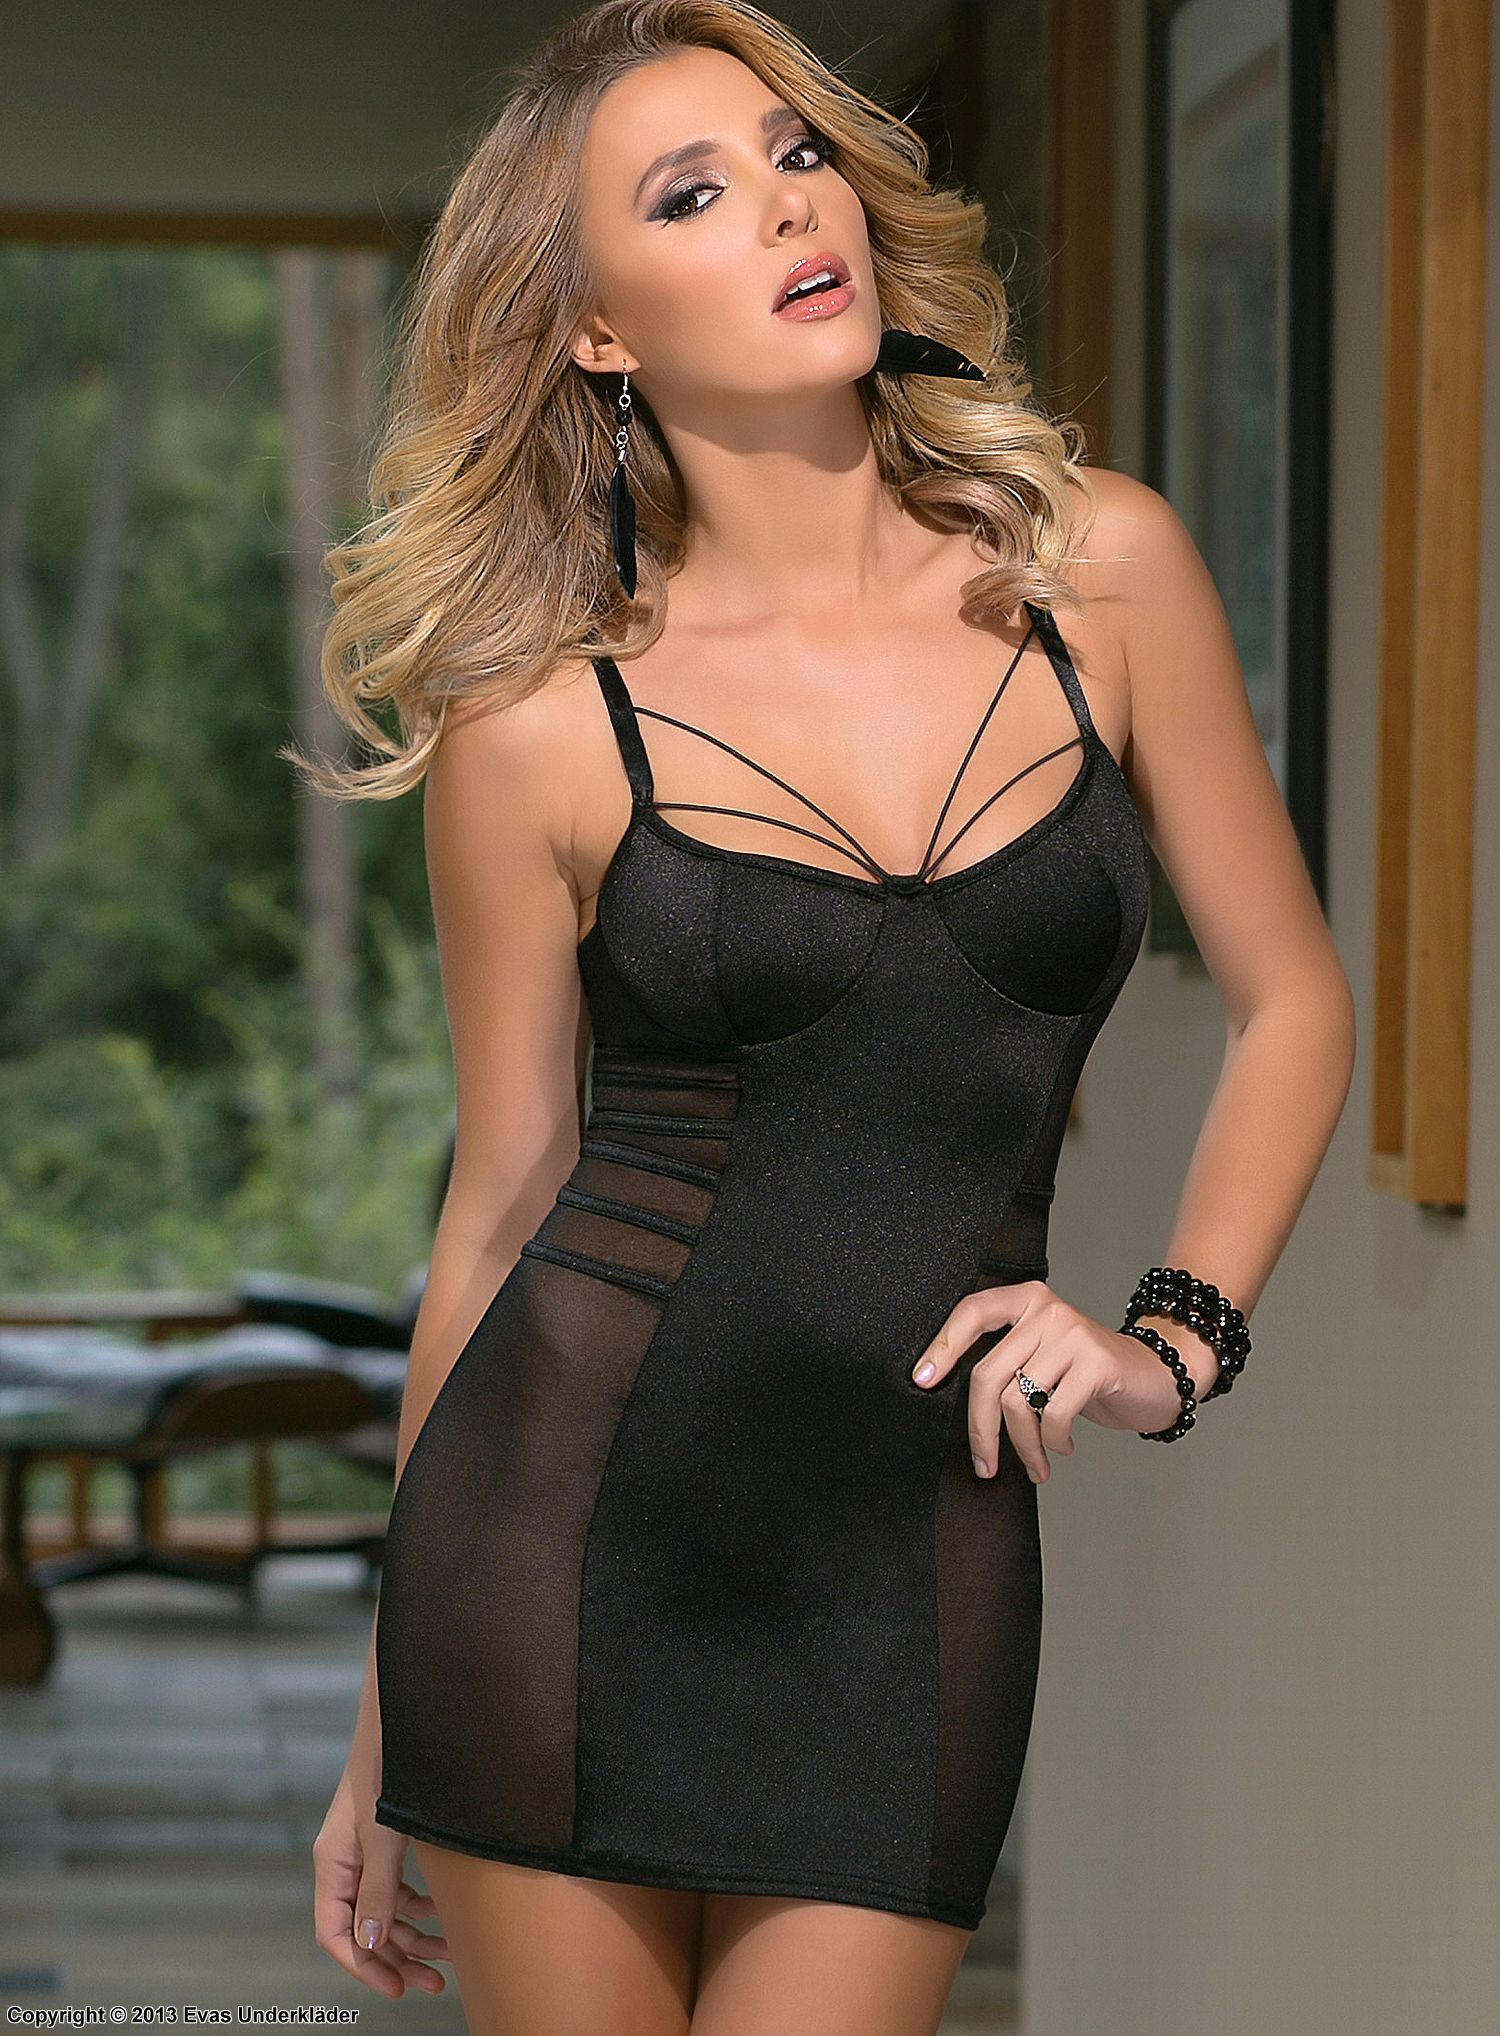 Skin-tight chemise, straps over bust, mesh inlay